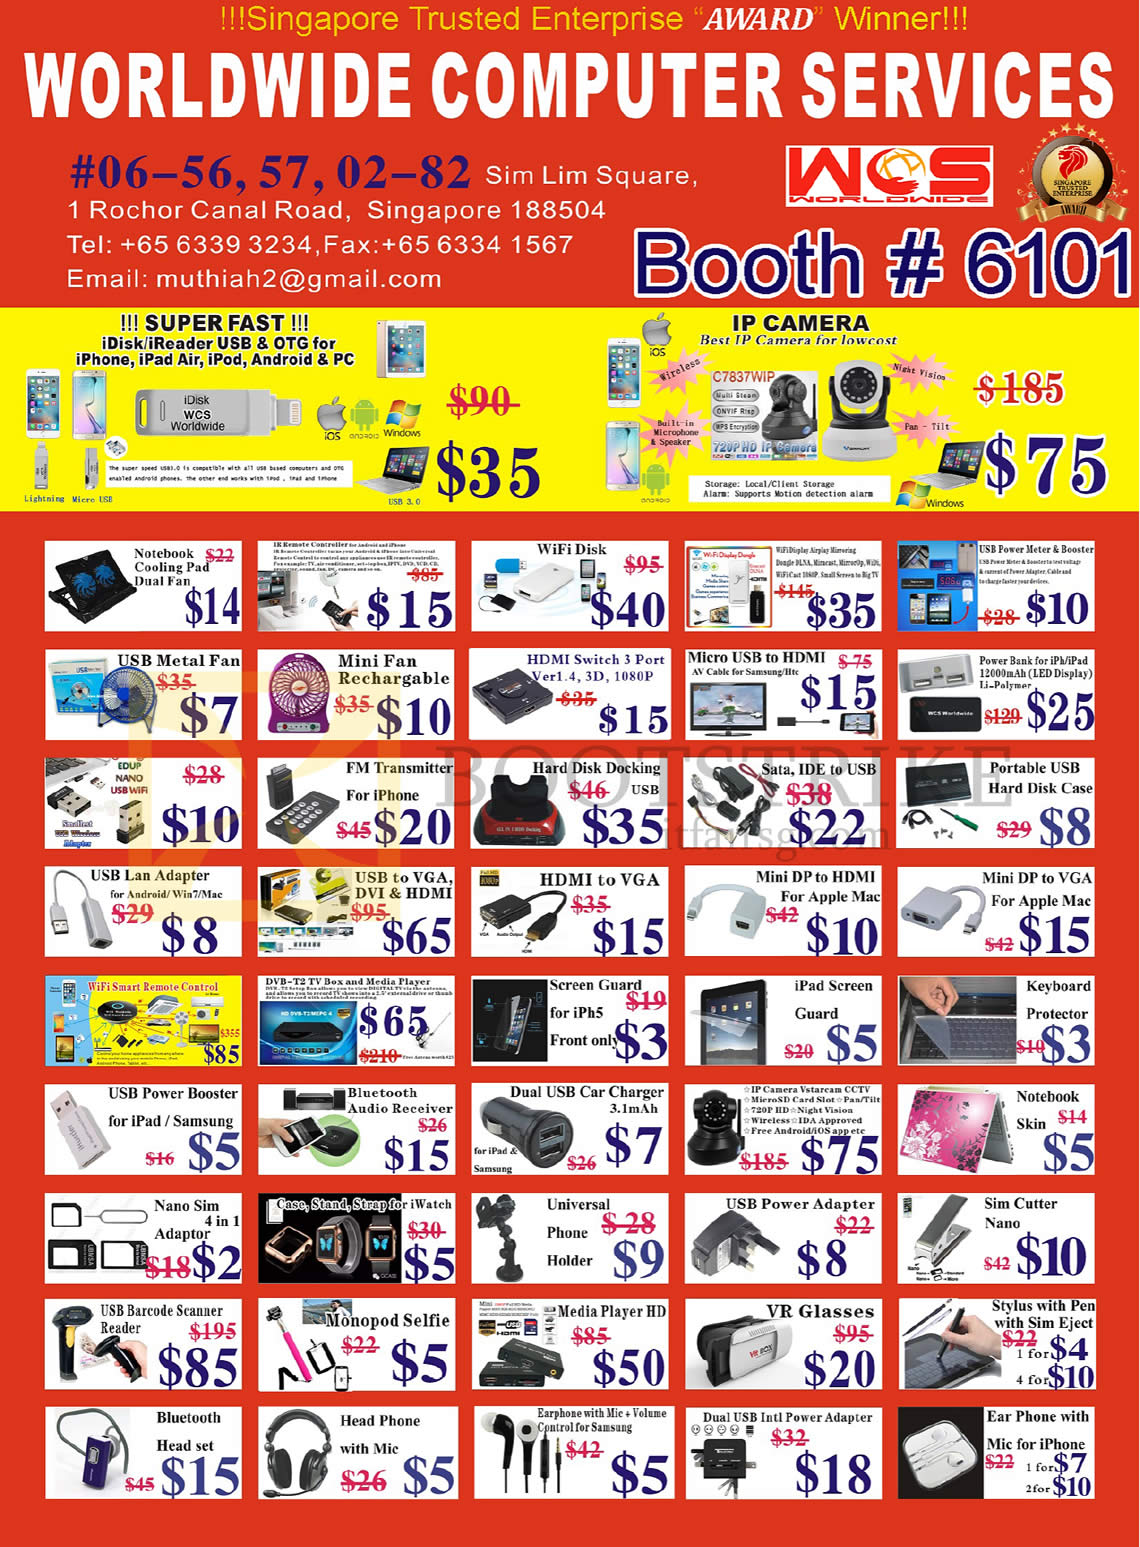 Worldwide Computer Accessories Ip Camera Idisk Ireader Notebook Cooling Pad 14 15 Comex 2016 Price List Image Brochure Of